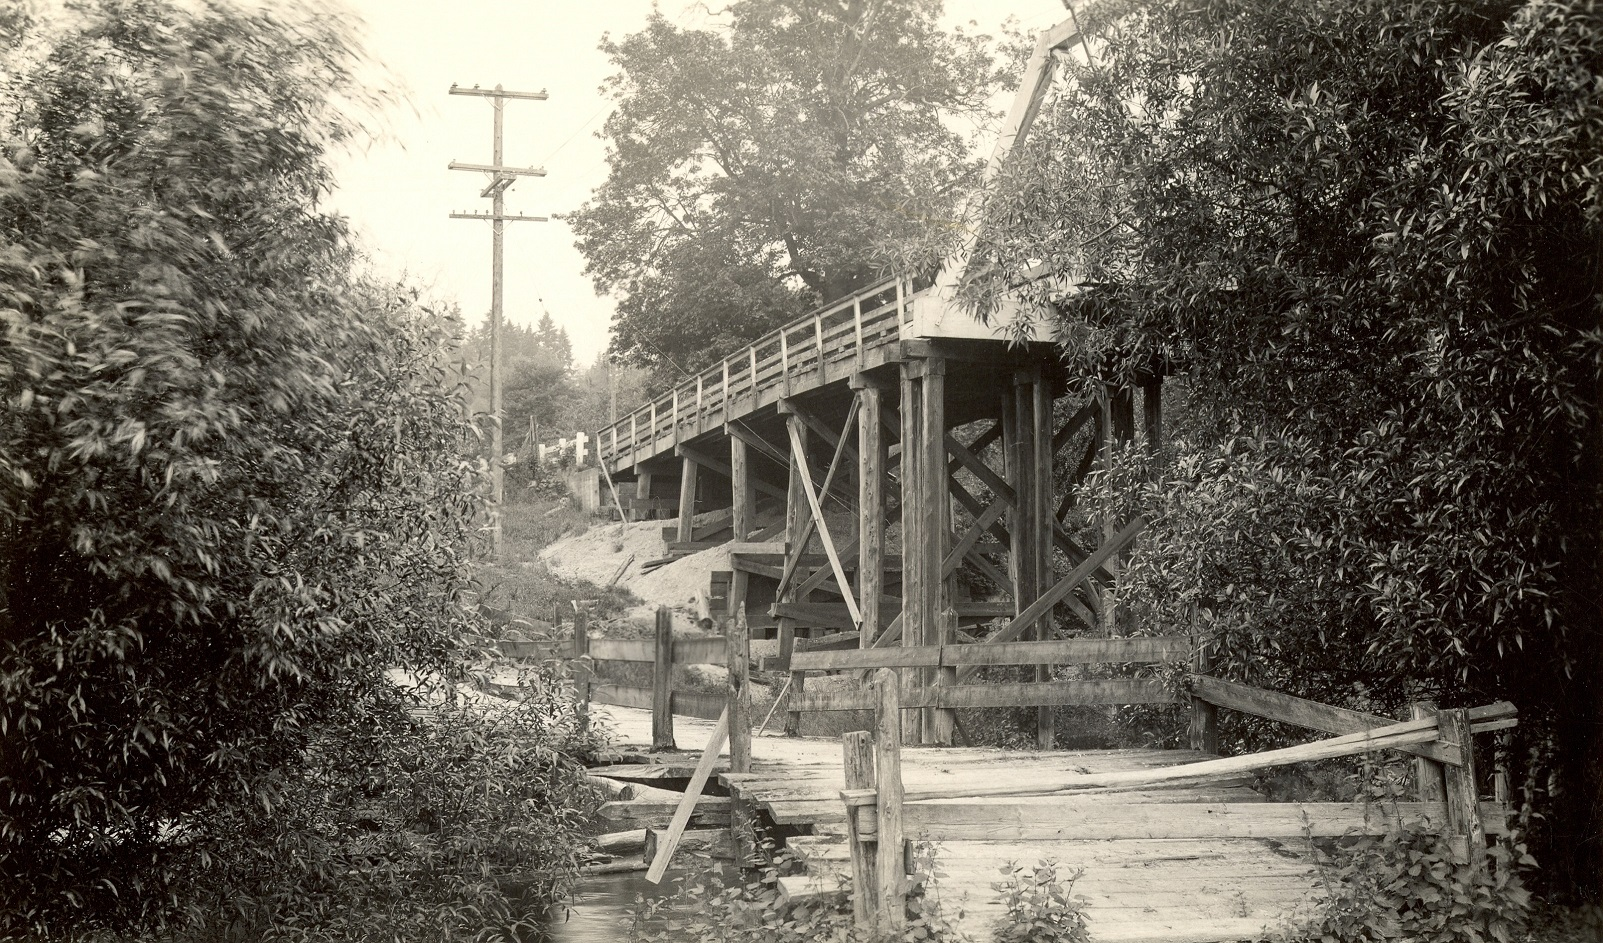 Bridge_no_721A__June_30_1933__TPBlum